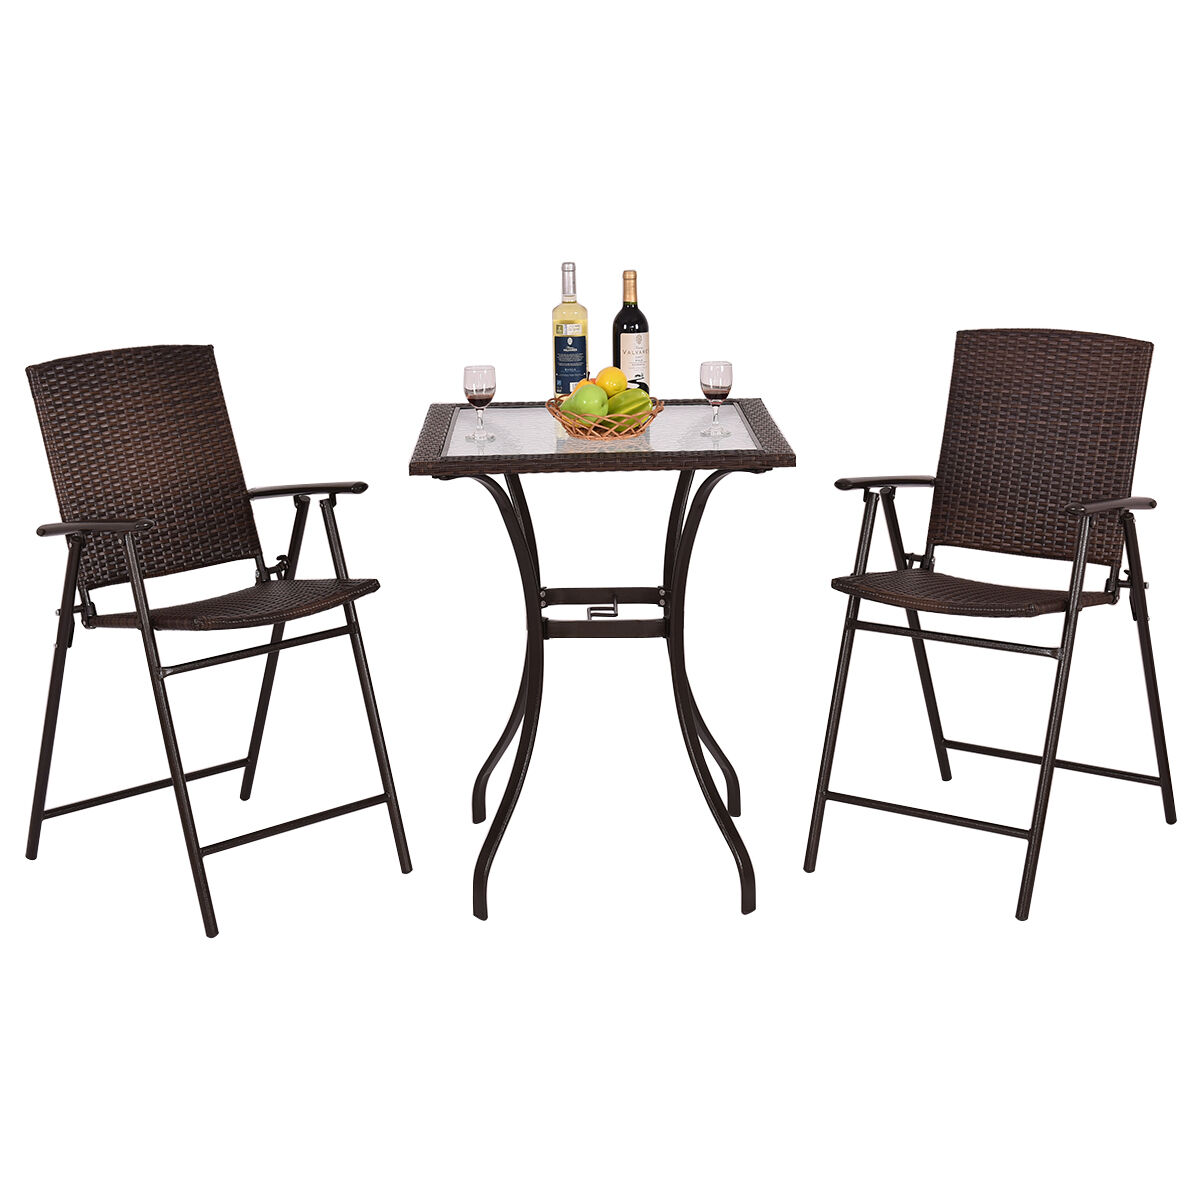 Cheap New Couches: Garden Bistro Set Table 2 Chair Patio Rattan Balcony Cheap